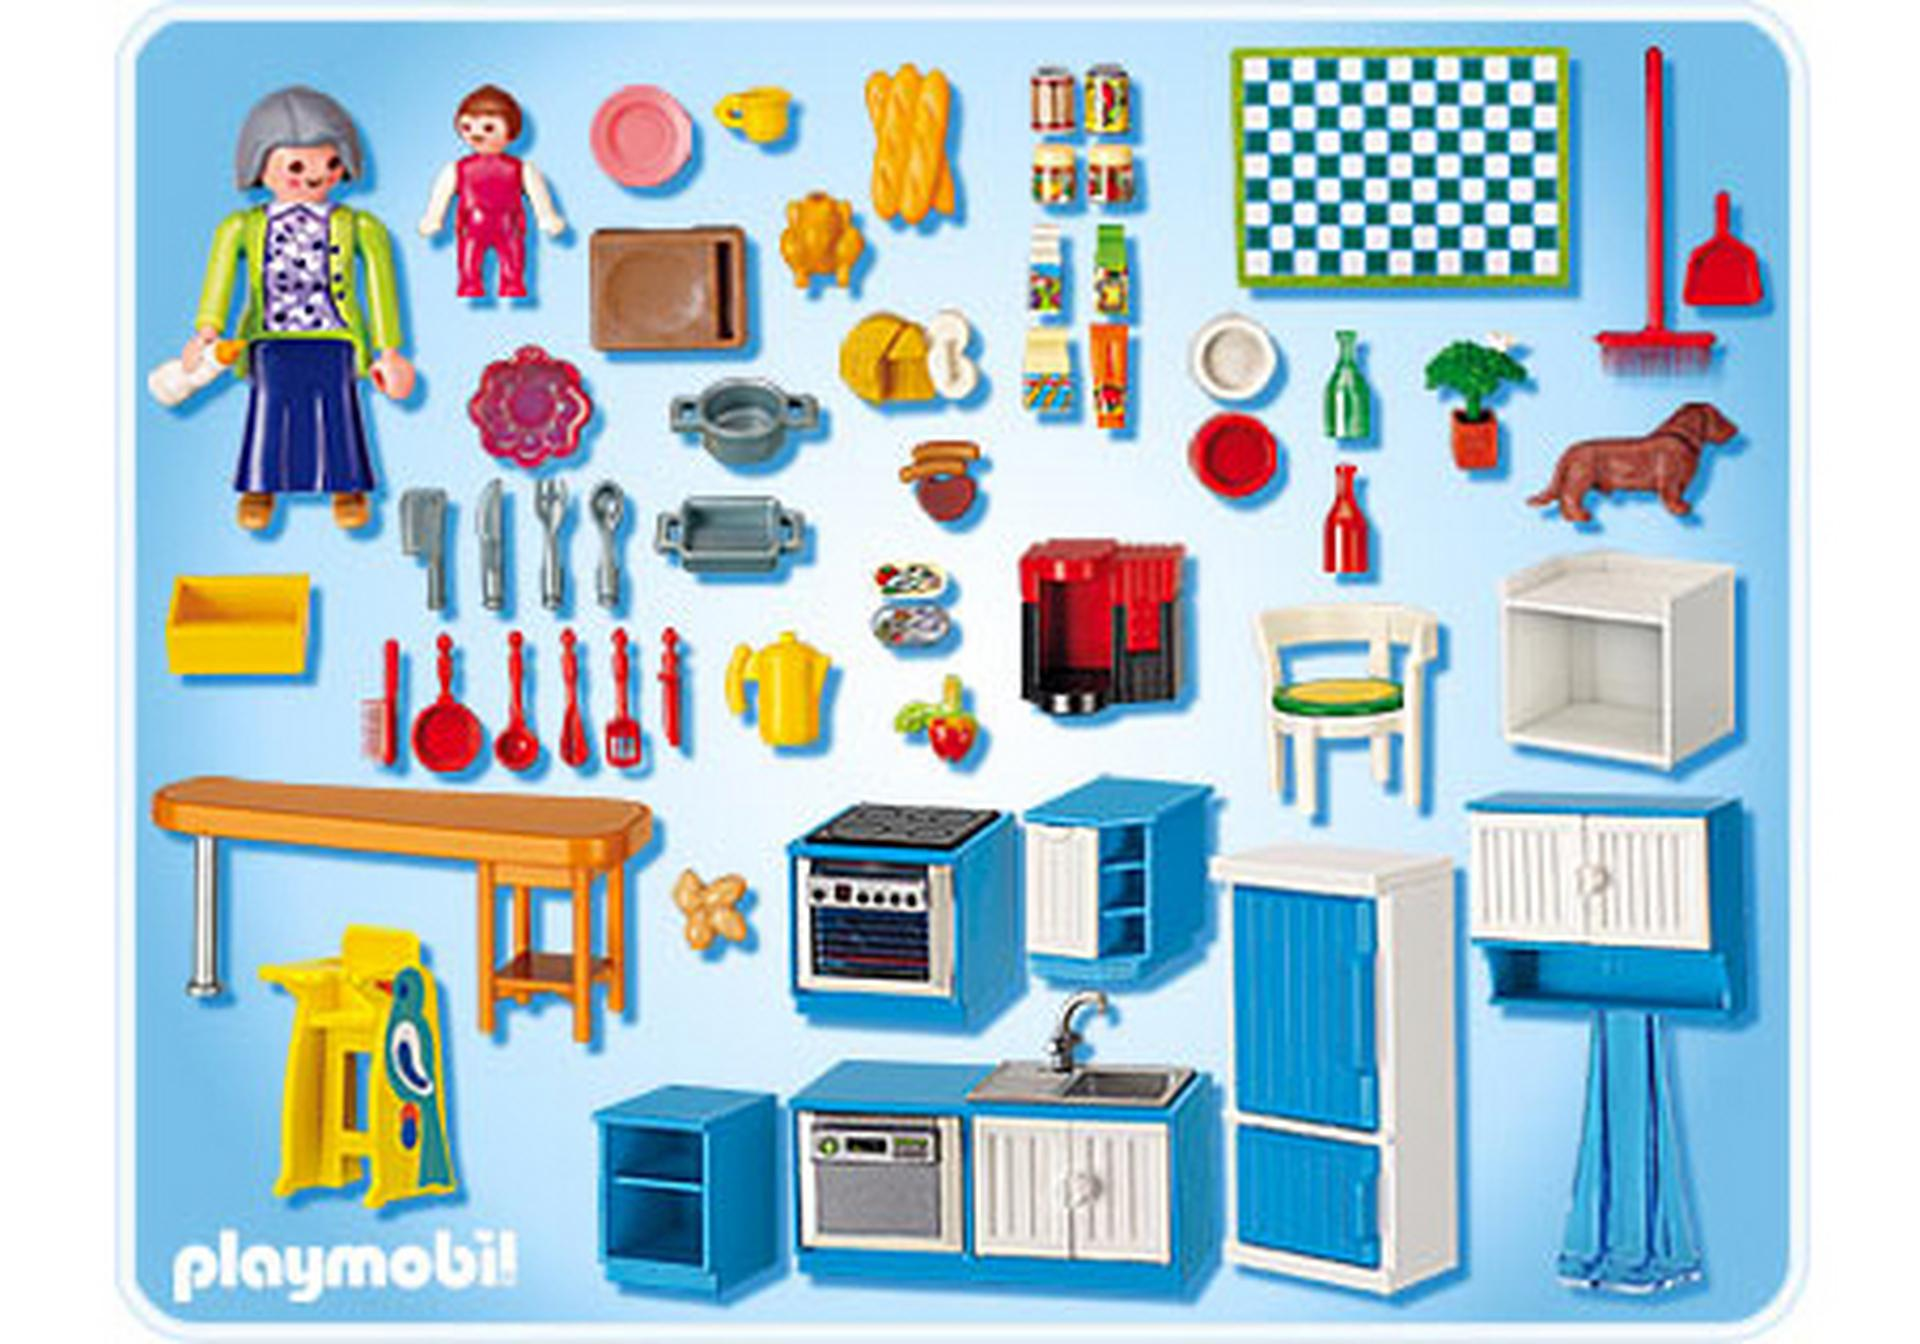 cuisine 5329 a playmobil france. Black Bedroom Furniture Sets. Home Design Ideas